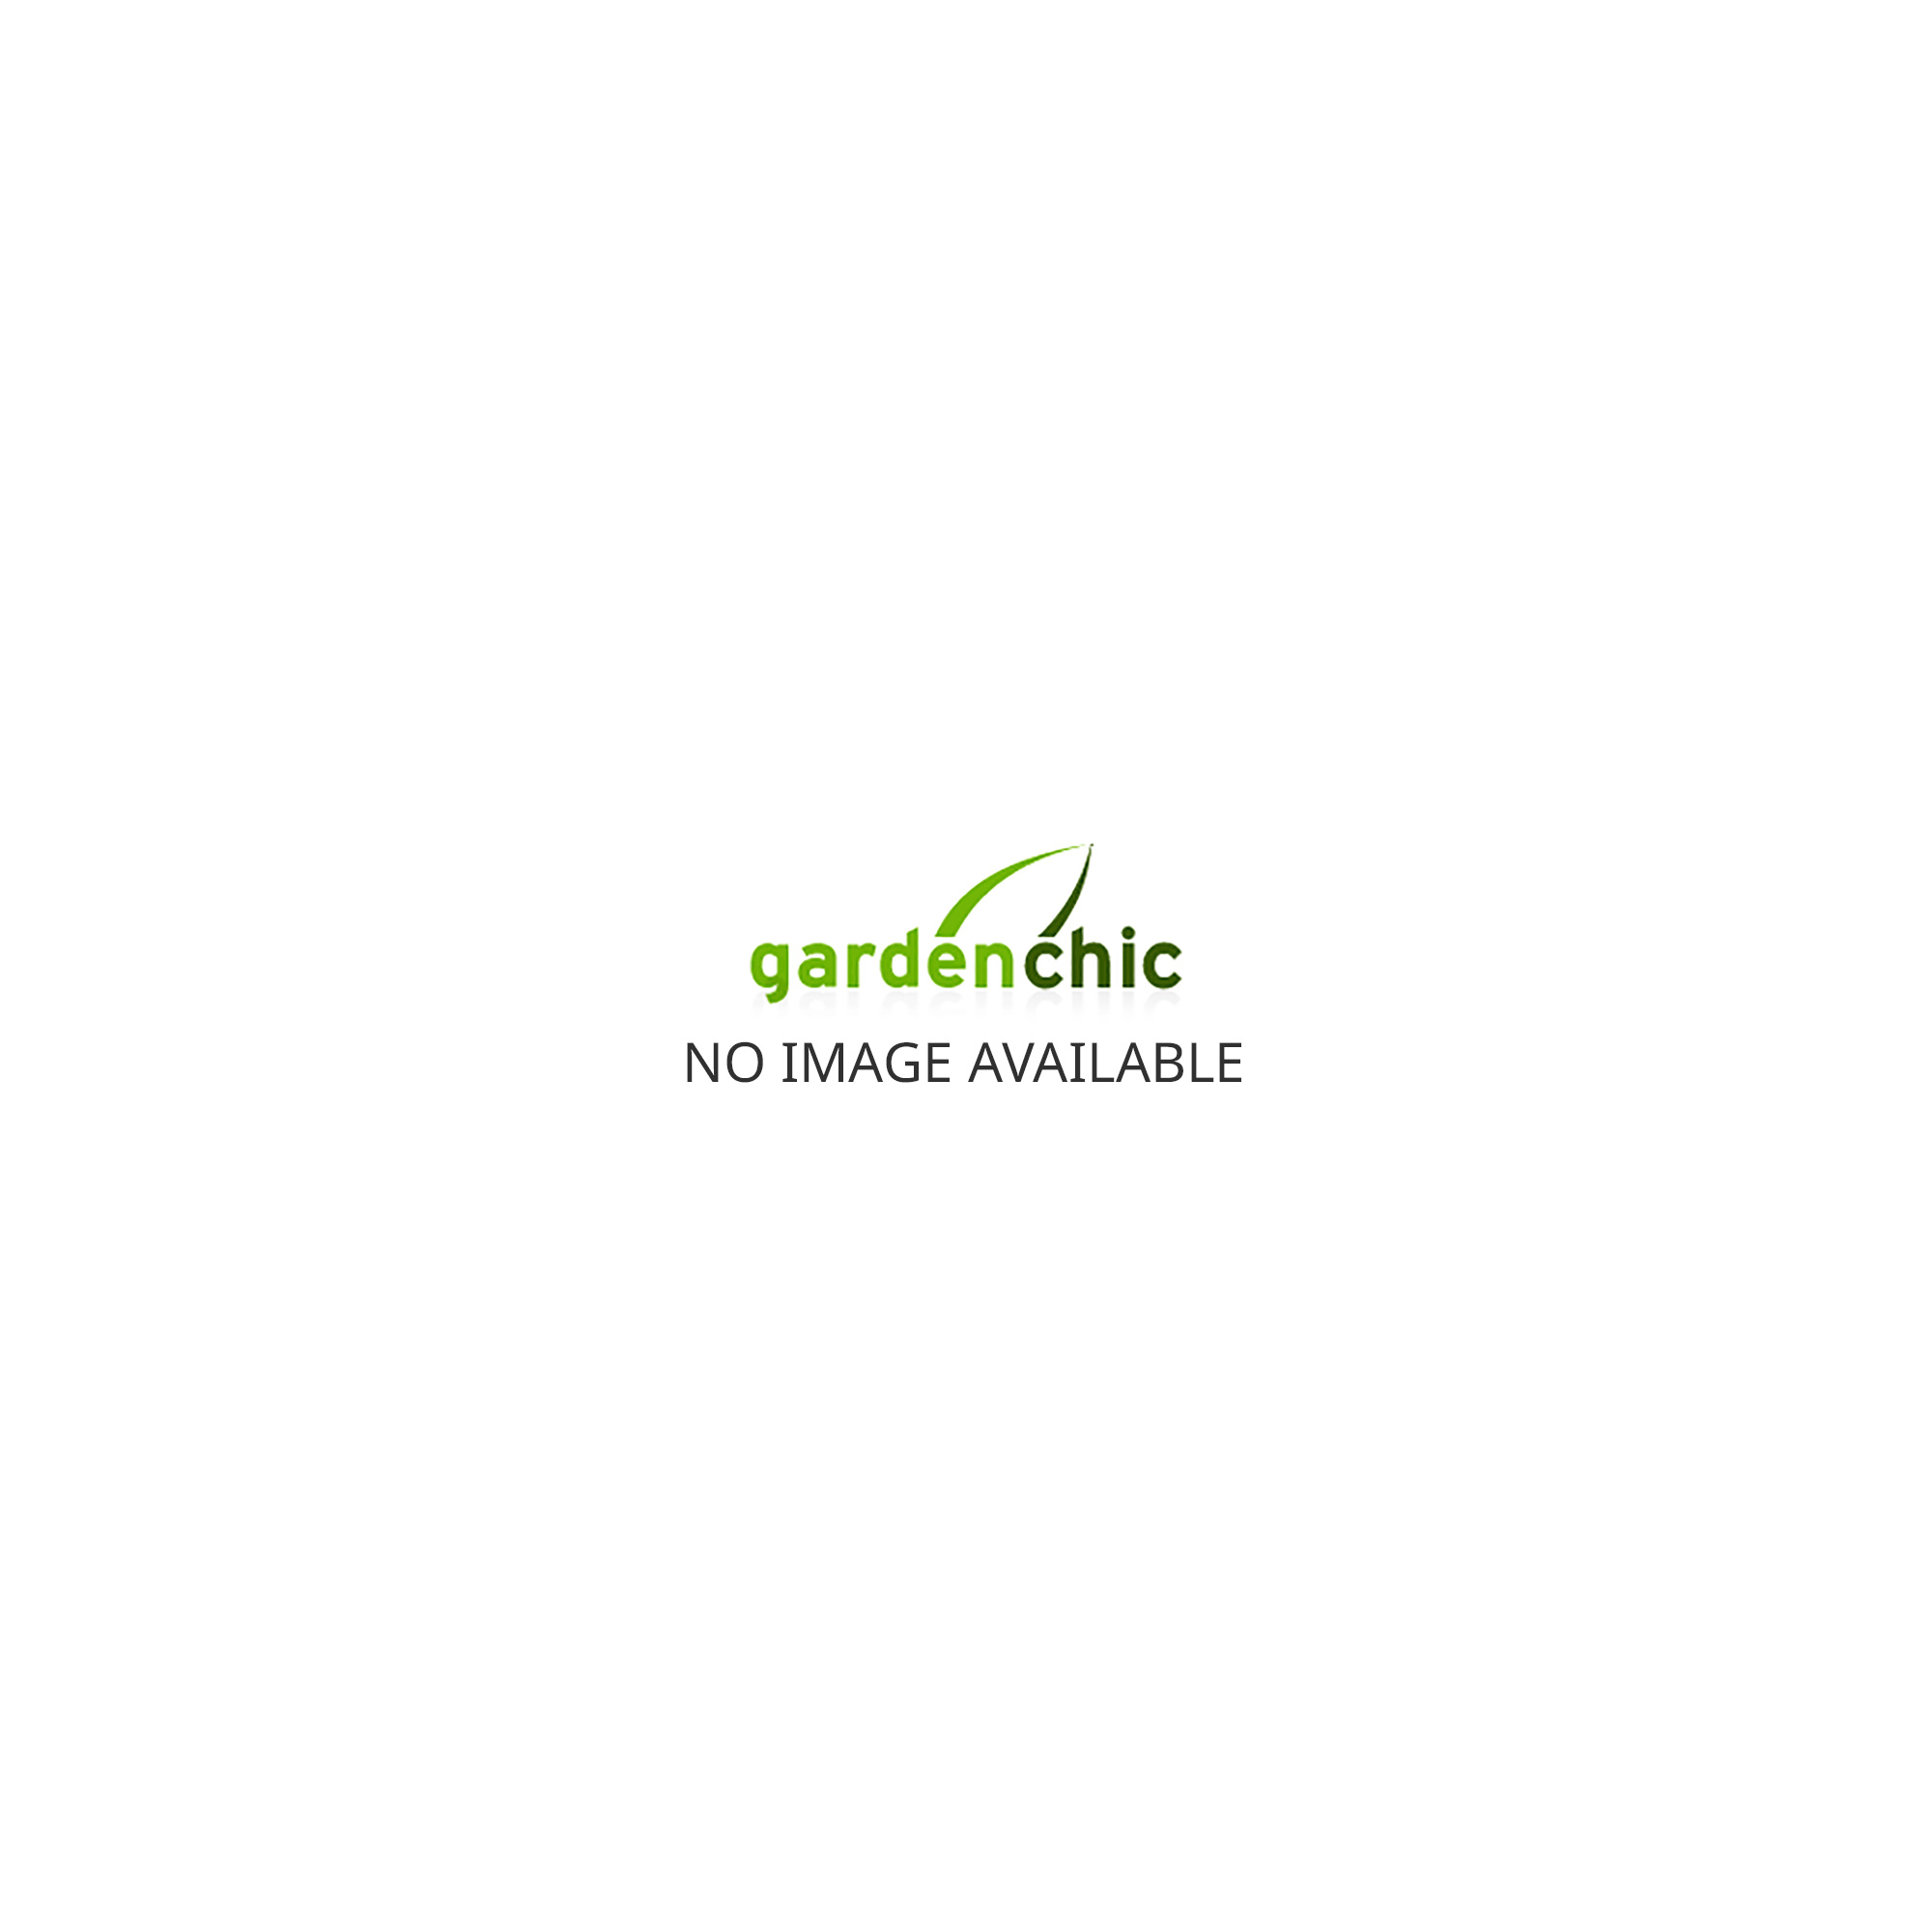 Venus 7500 6ft x 12ft Greenhouse - Green FREE Matching Base until APRIL 2018